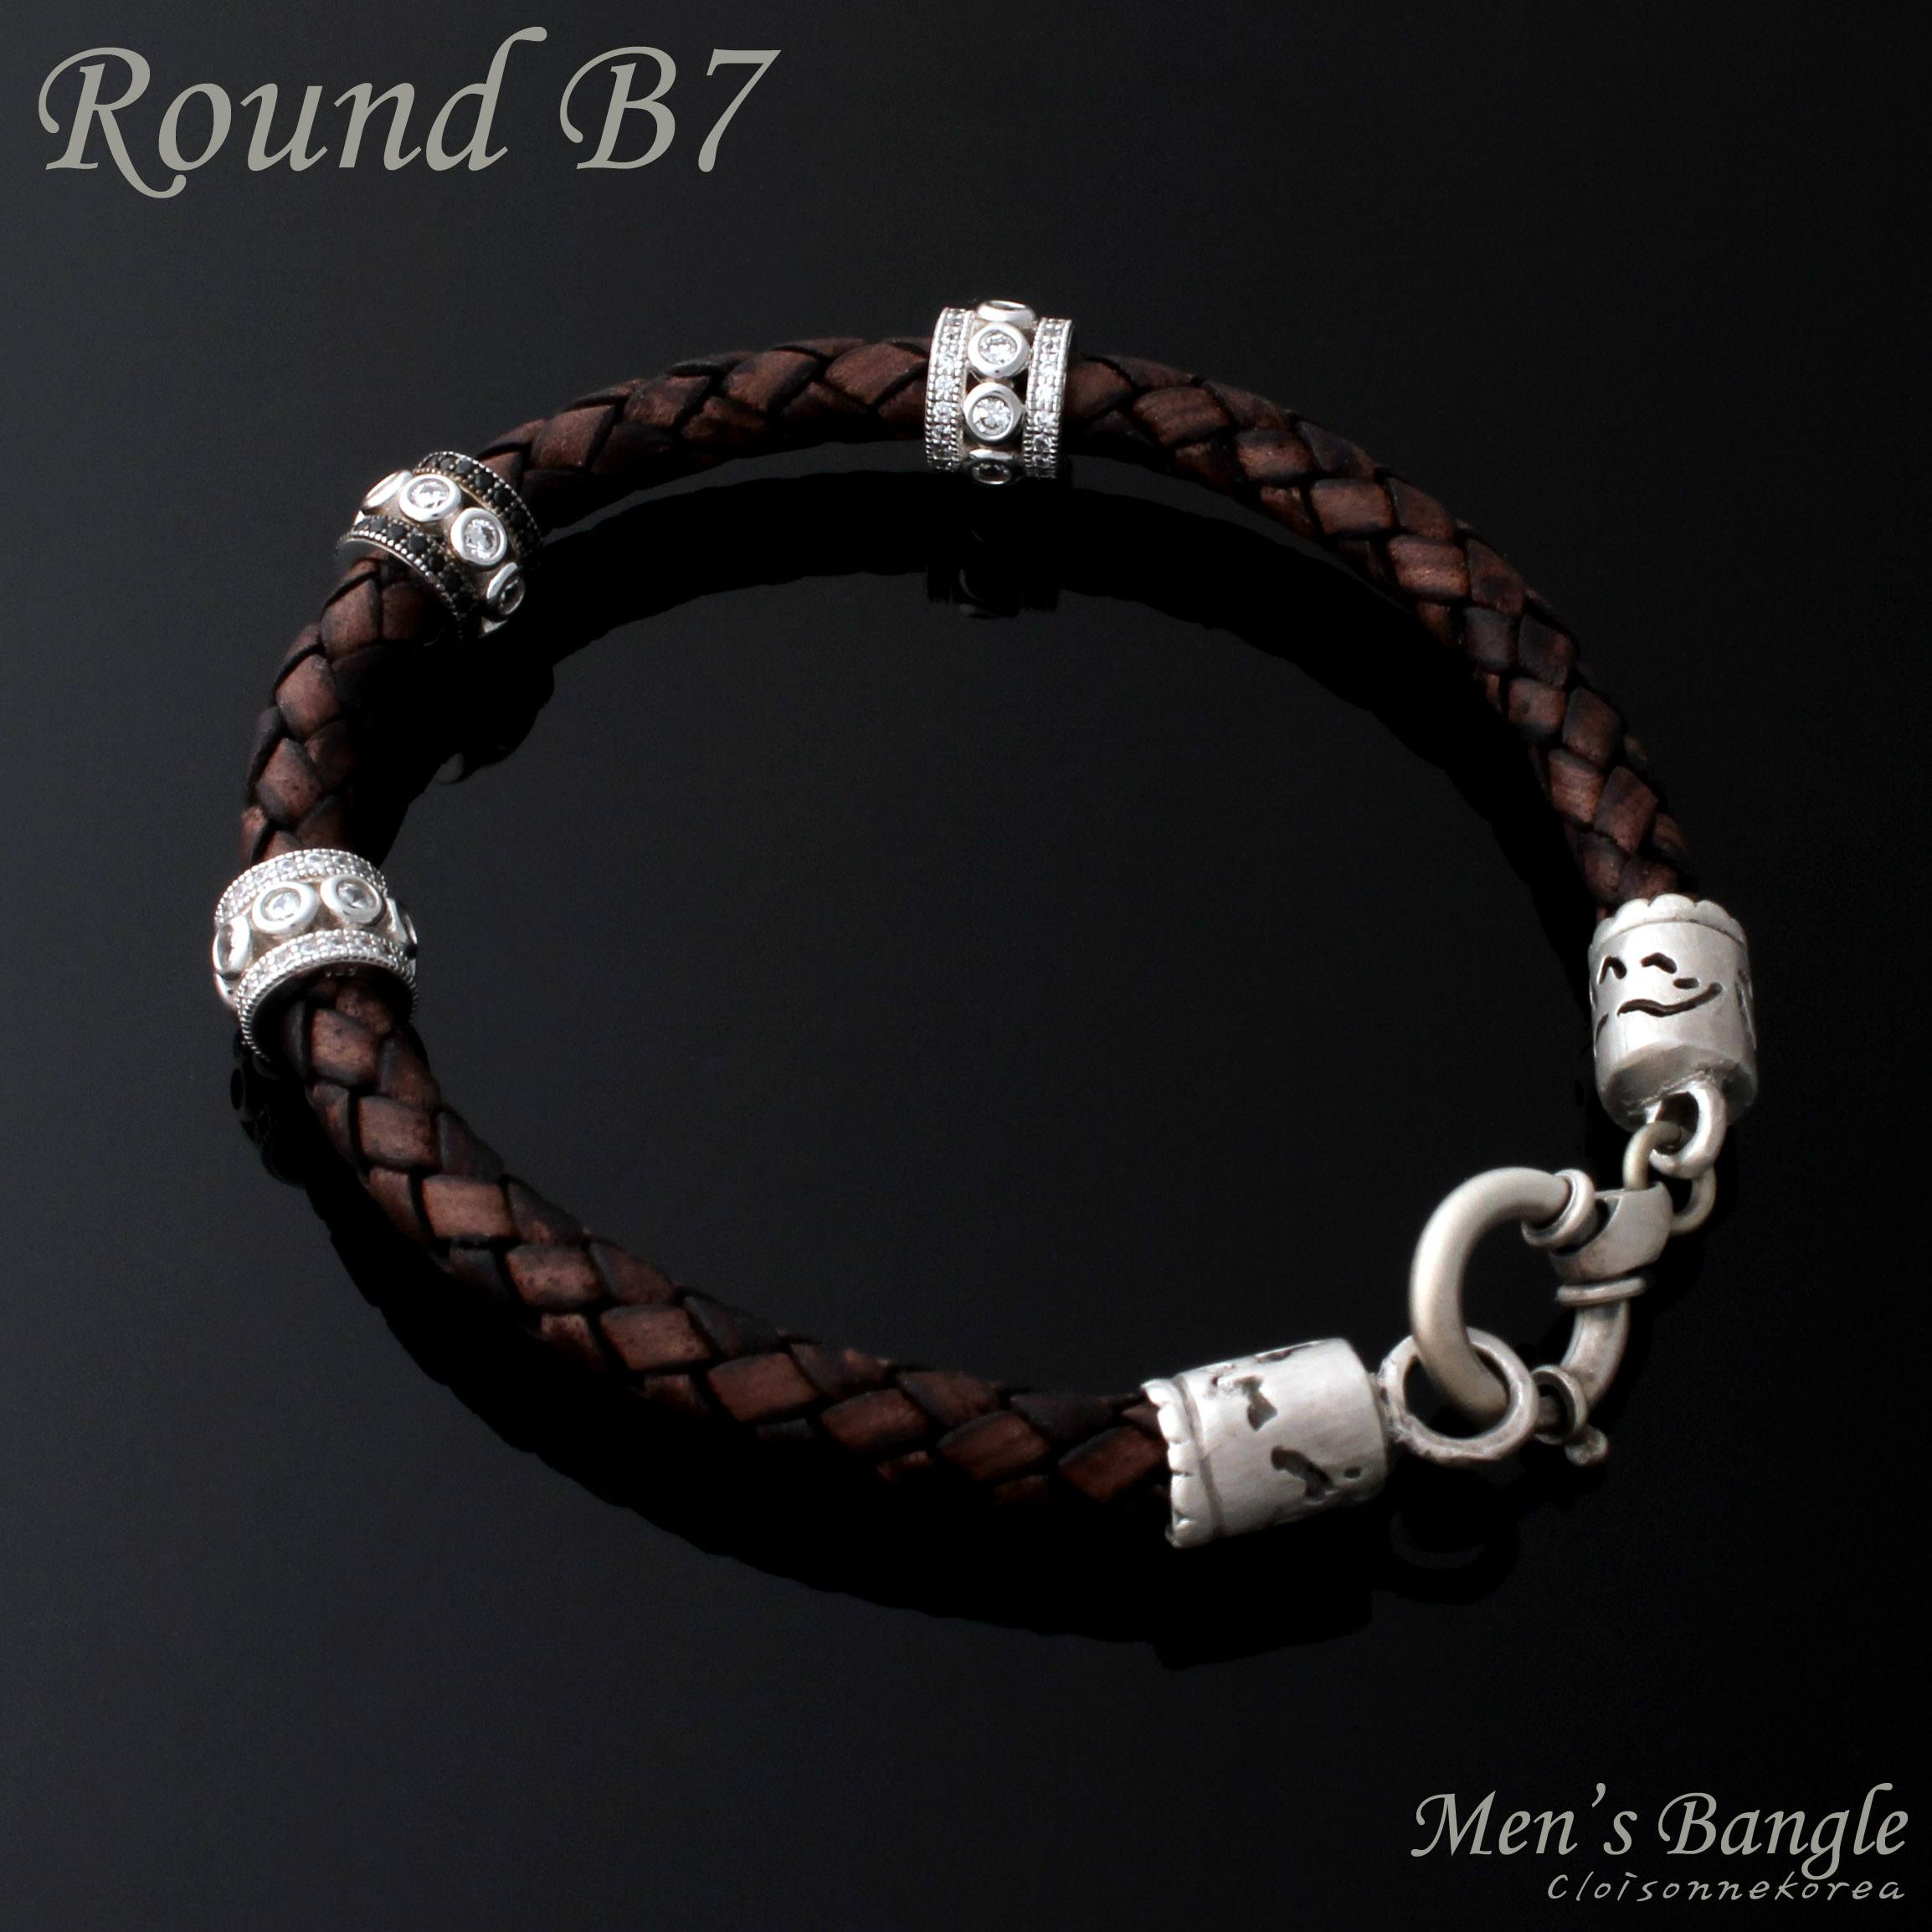 Round B7 leather bangle/bracelet